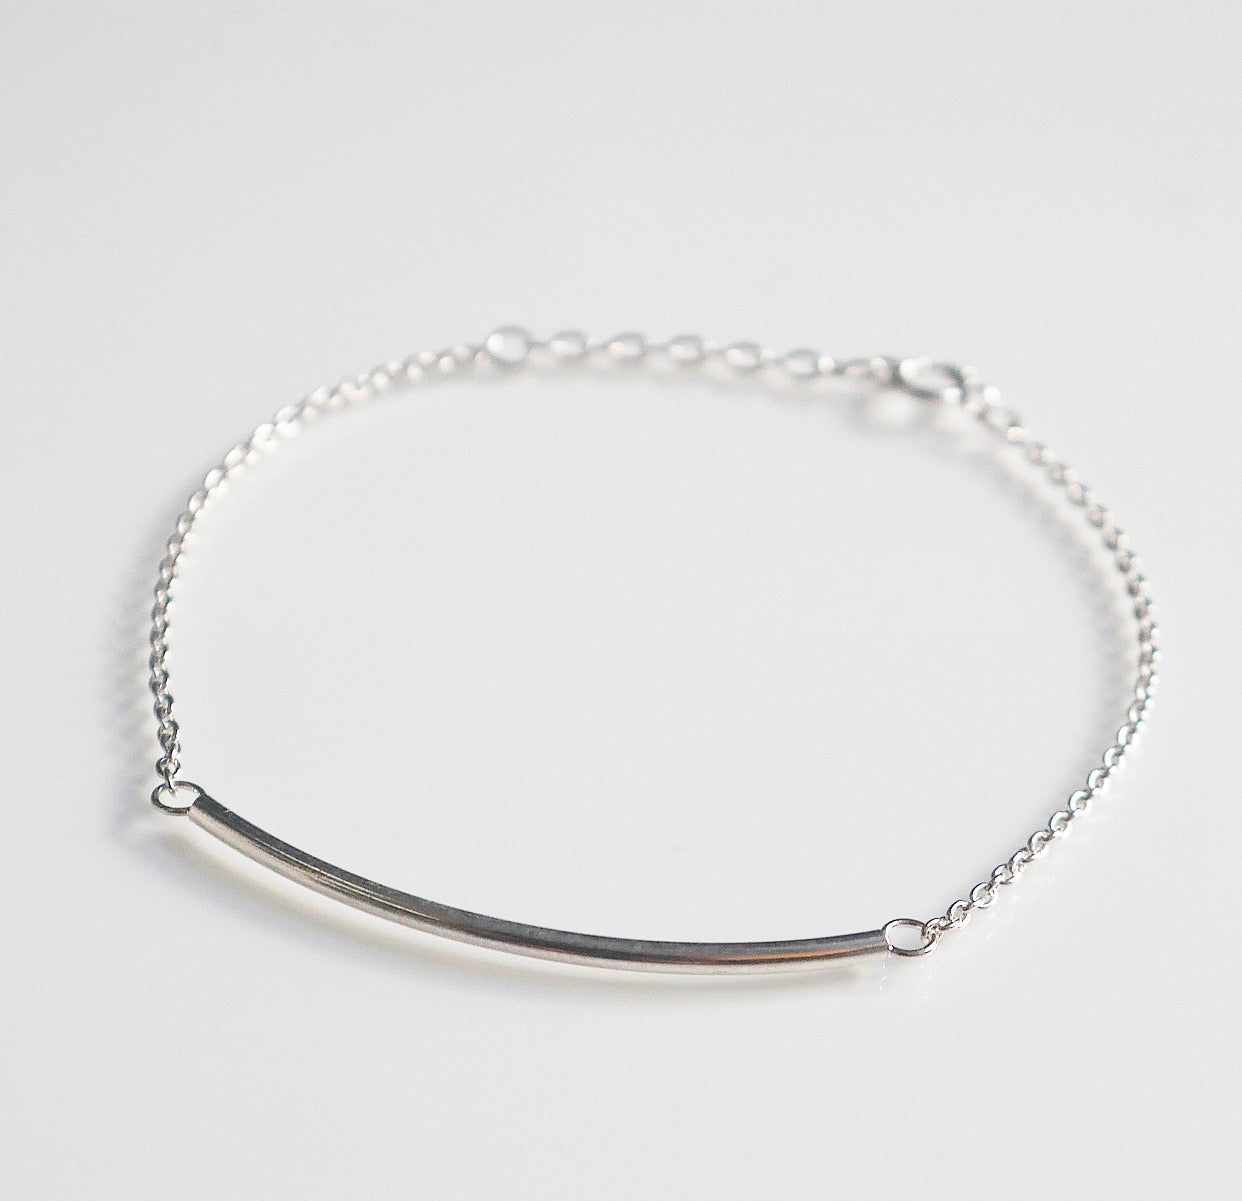 Bar bracelet bar chain bracelet, dainty bar bracelet by KesleyBoutique.com, Girlwith3jobs.com, cute bracelets, delicate bracelet, bar bracelet in sterling silver .925 , shopping in Miami, jewelry store in Miami, shopping in south beach